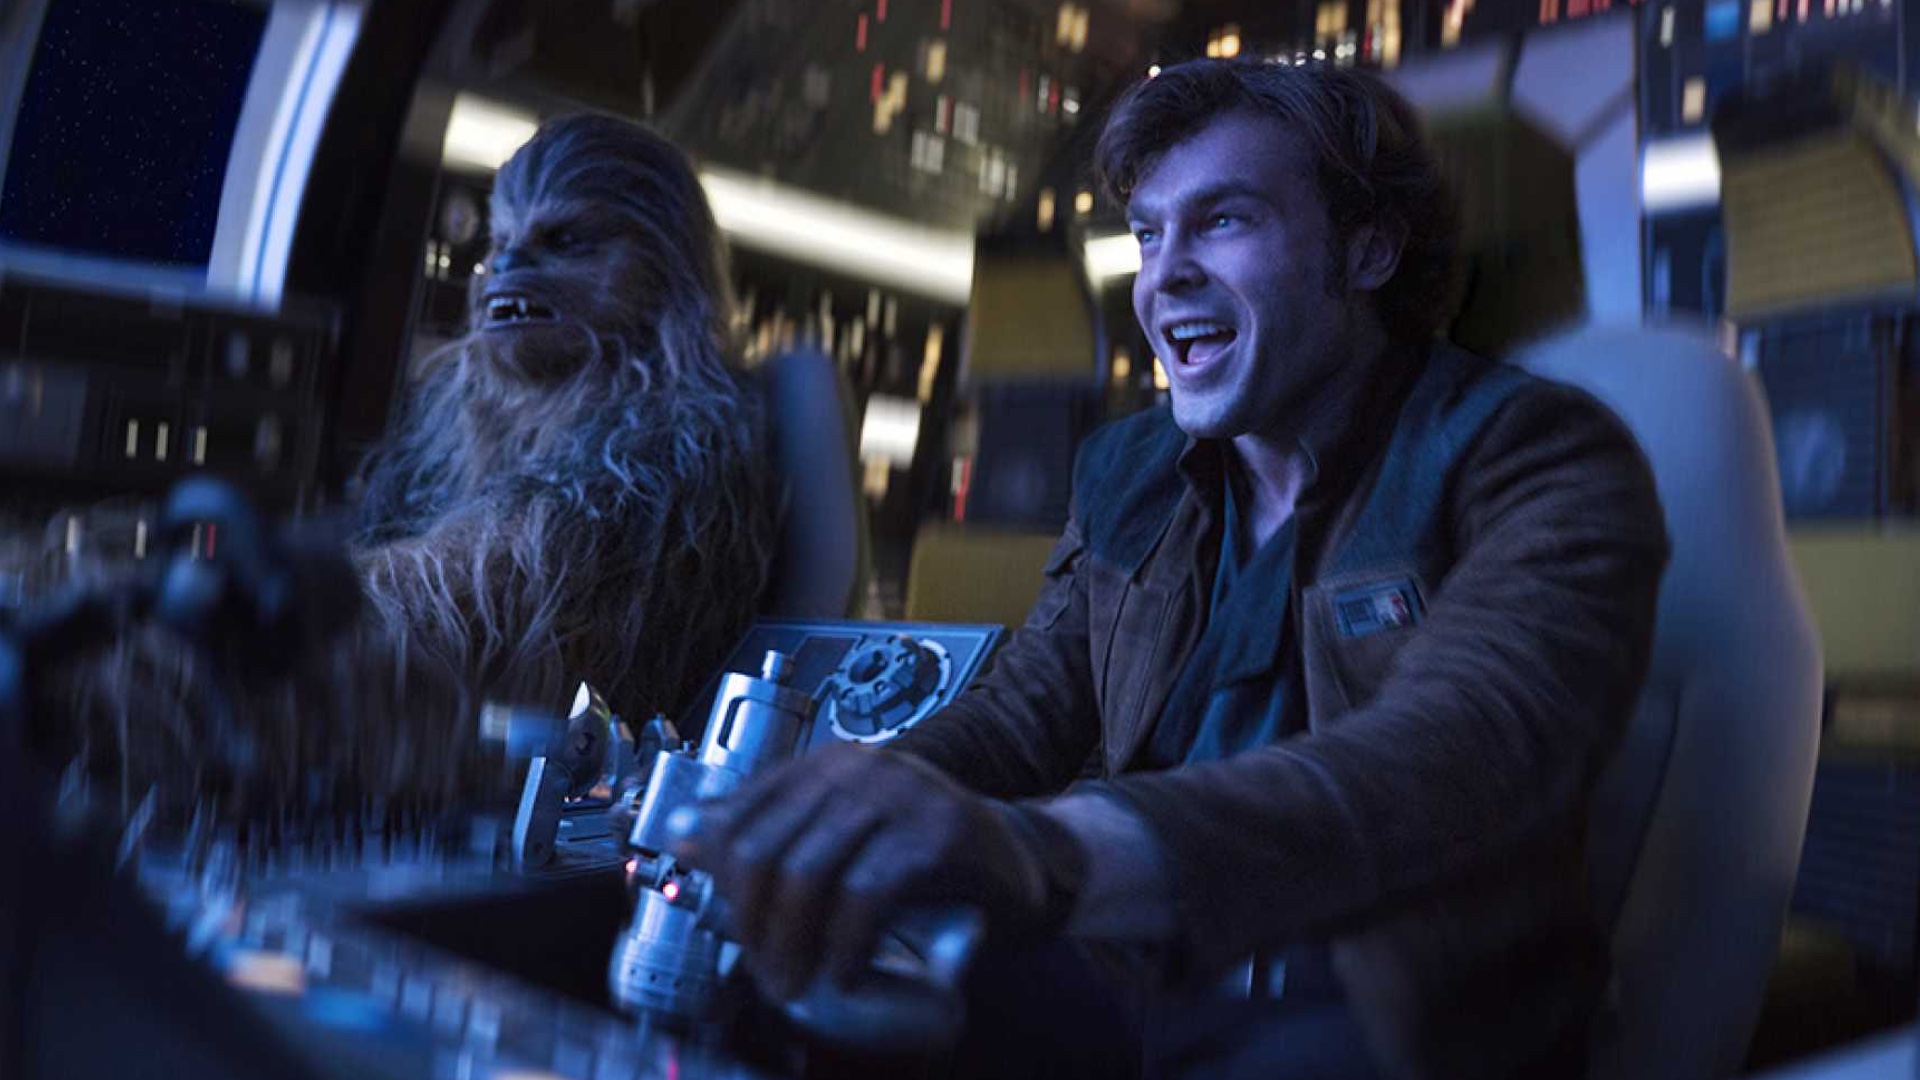 review-solo-a-star-wars-story-is-my-favorite-of-the-new-star-wars-films-social.jpg